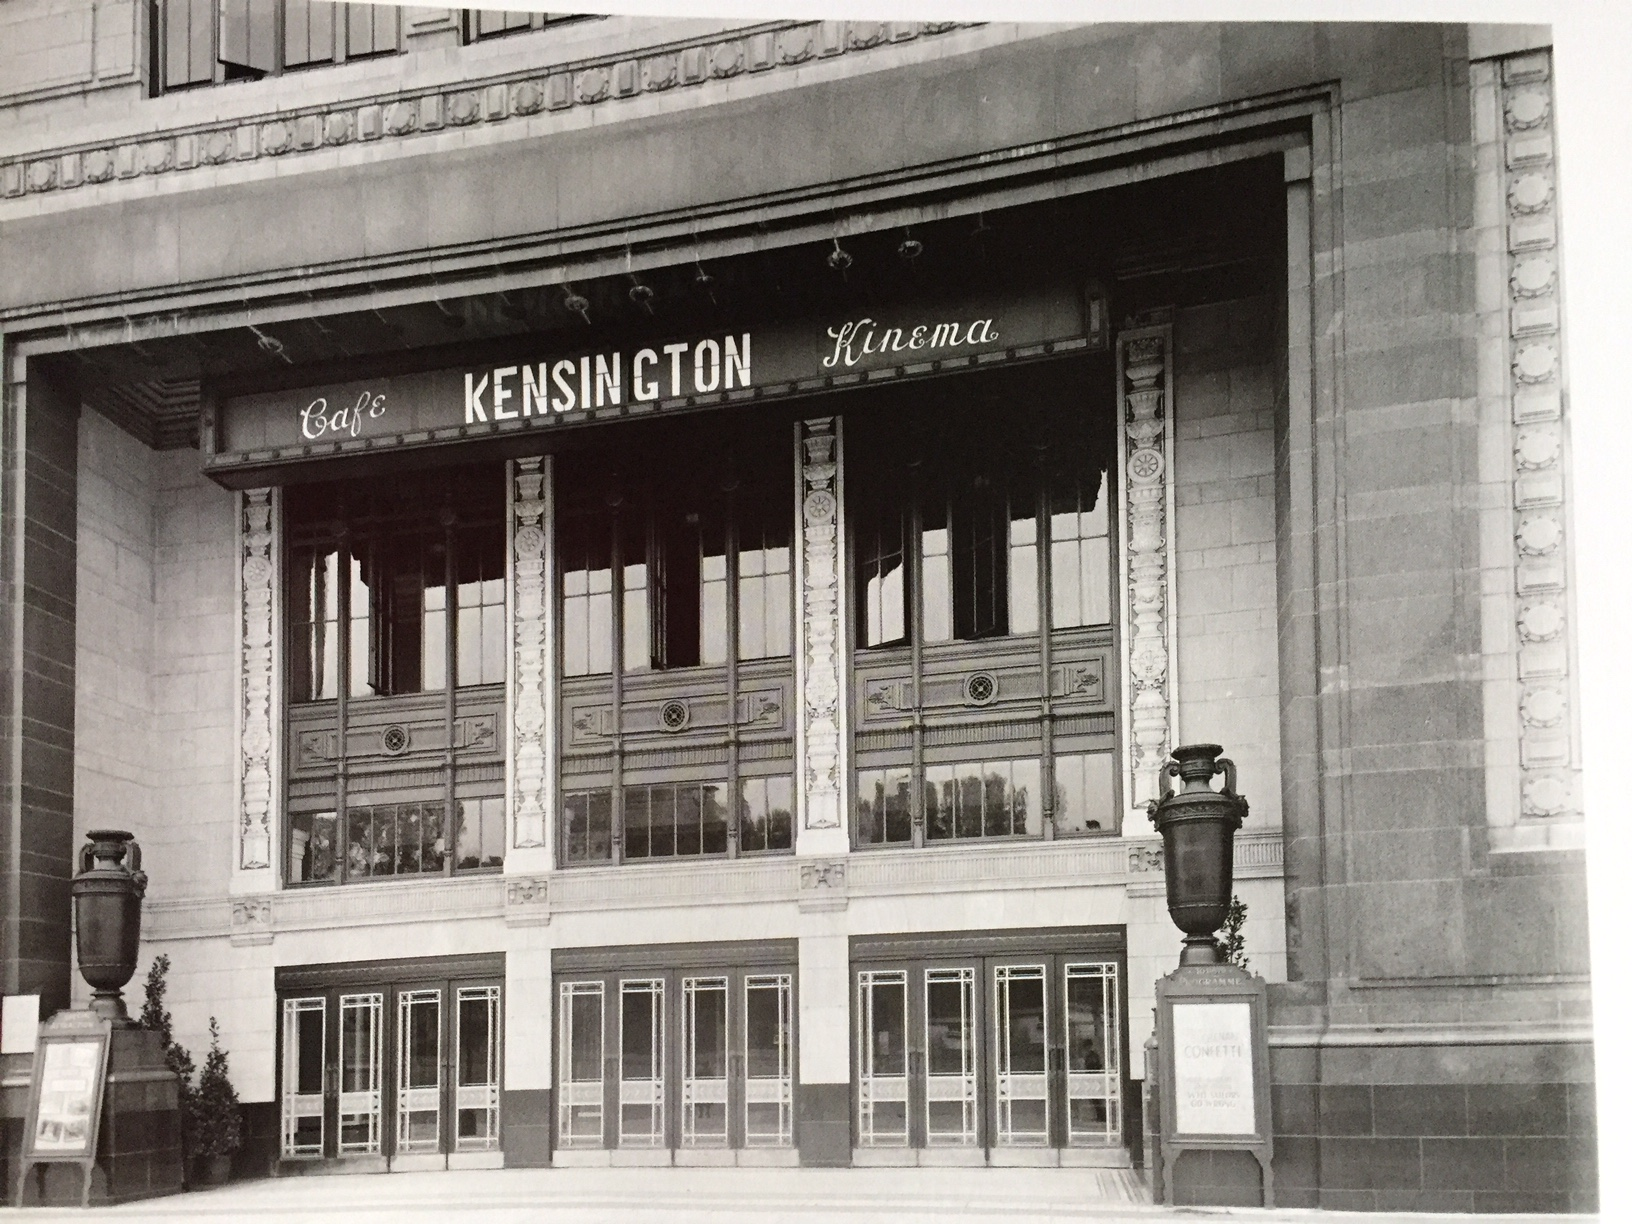 The Kensigton Cinema London 1926